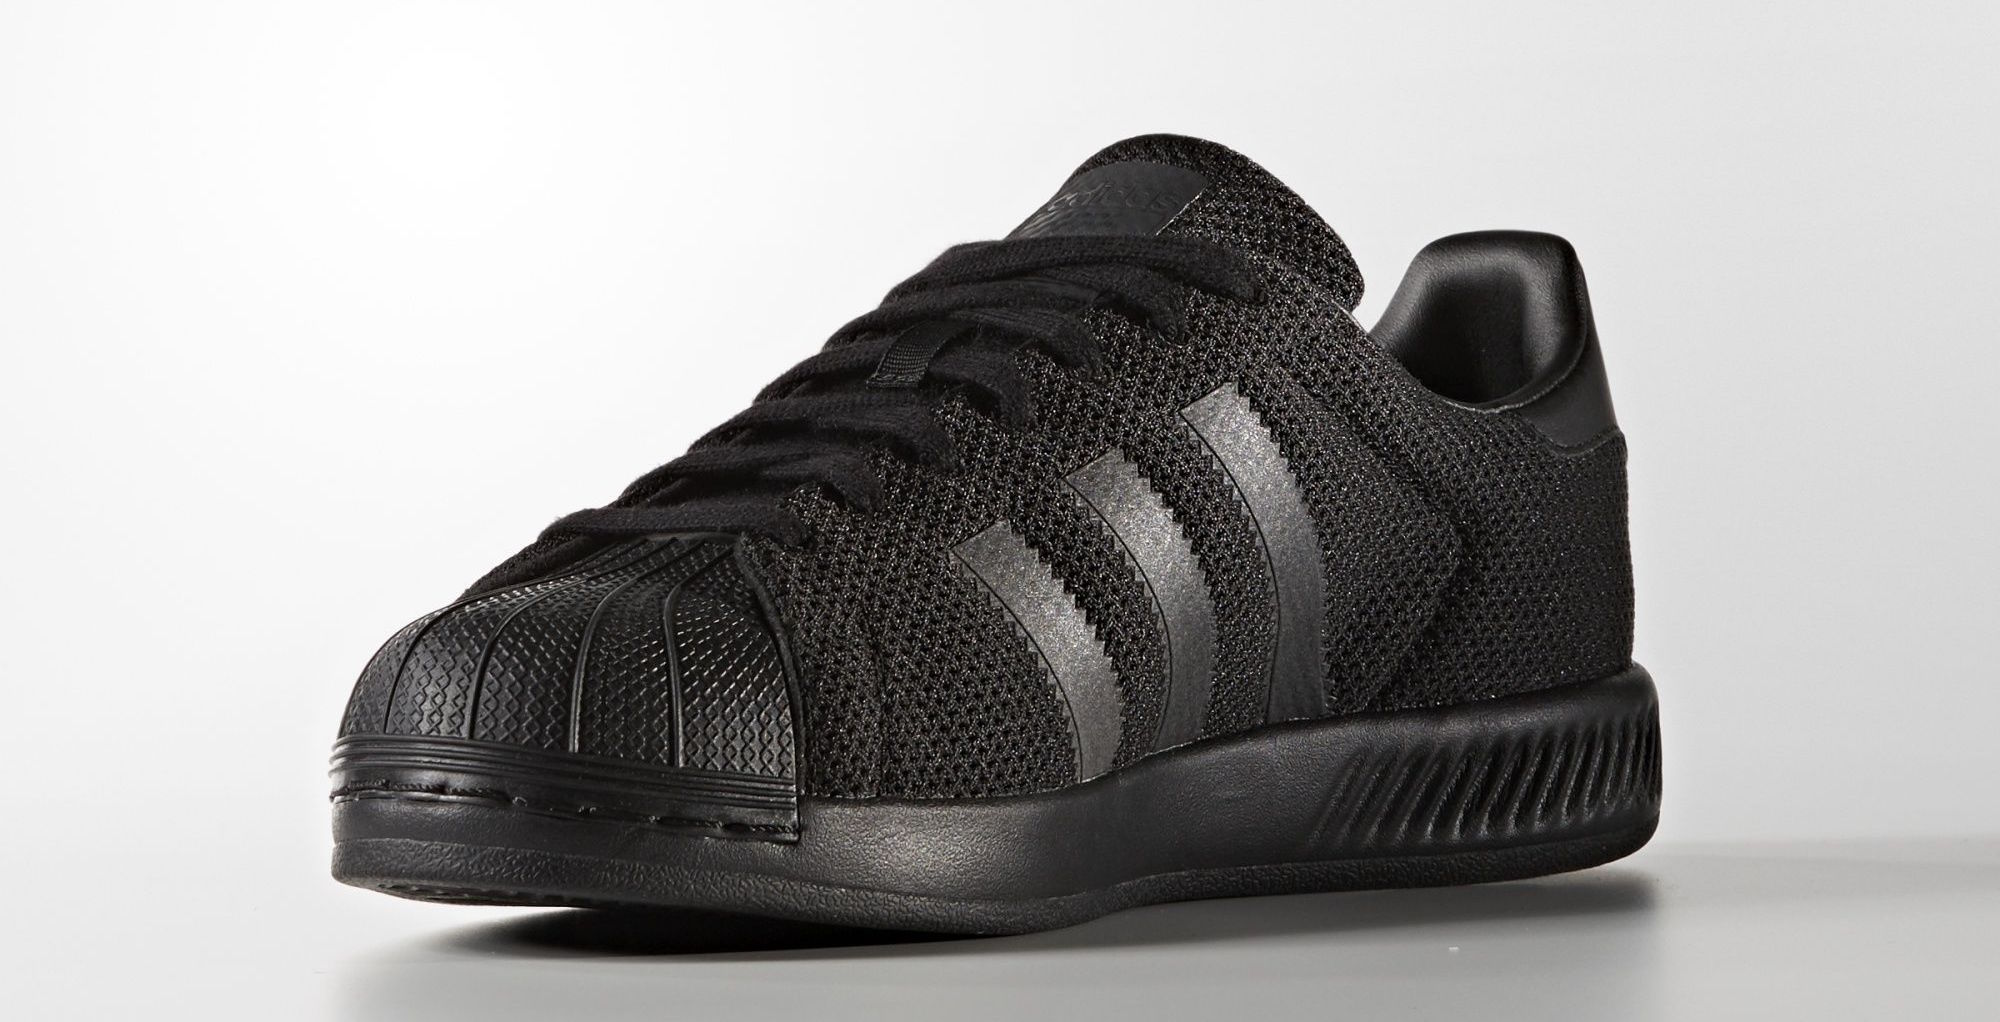 The adidas Superstar to Feature Bounce